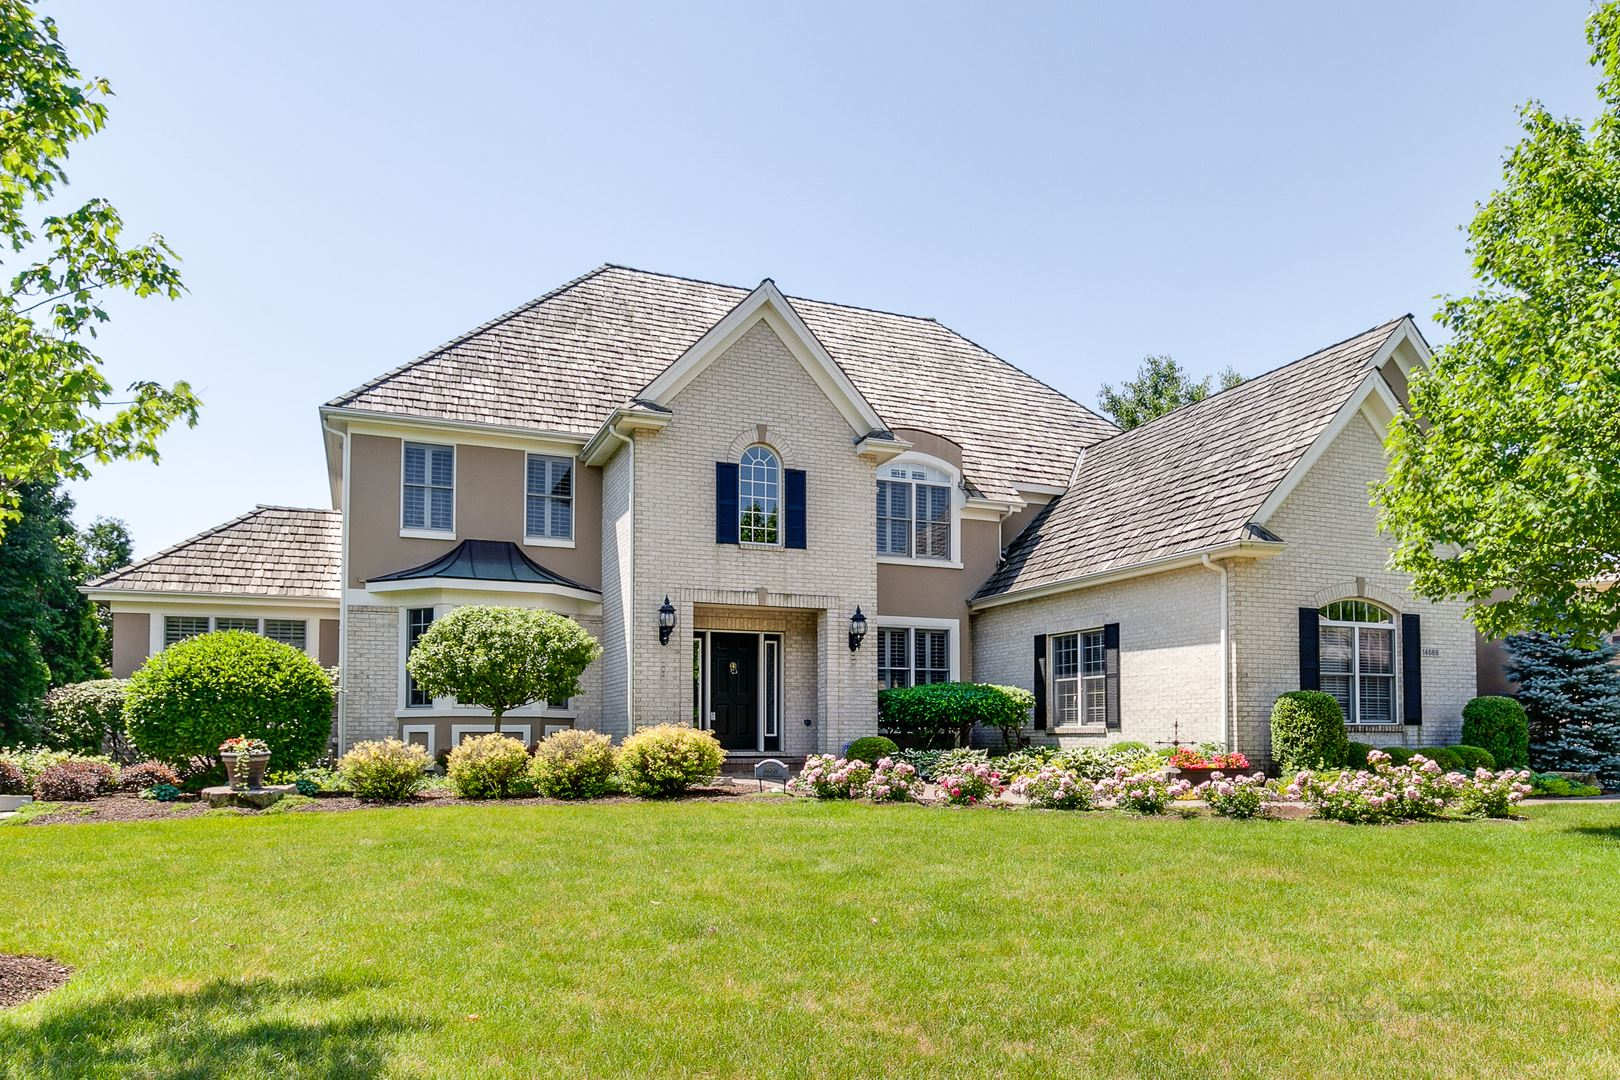 14669 N Somerset Circle, Libertyville, IL 60048 - #: 10768100